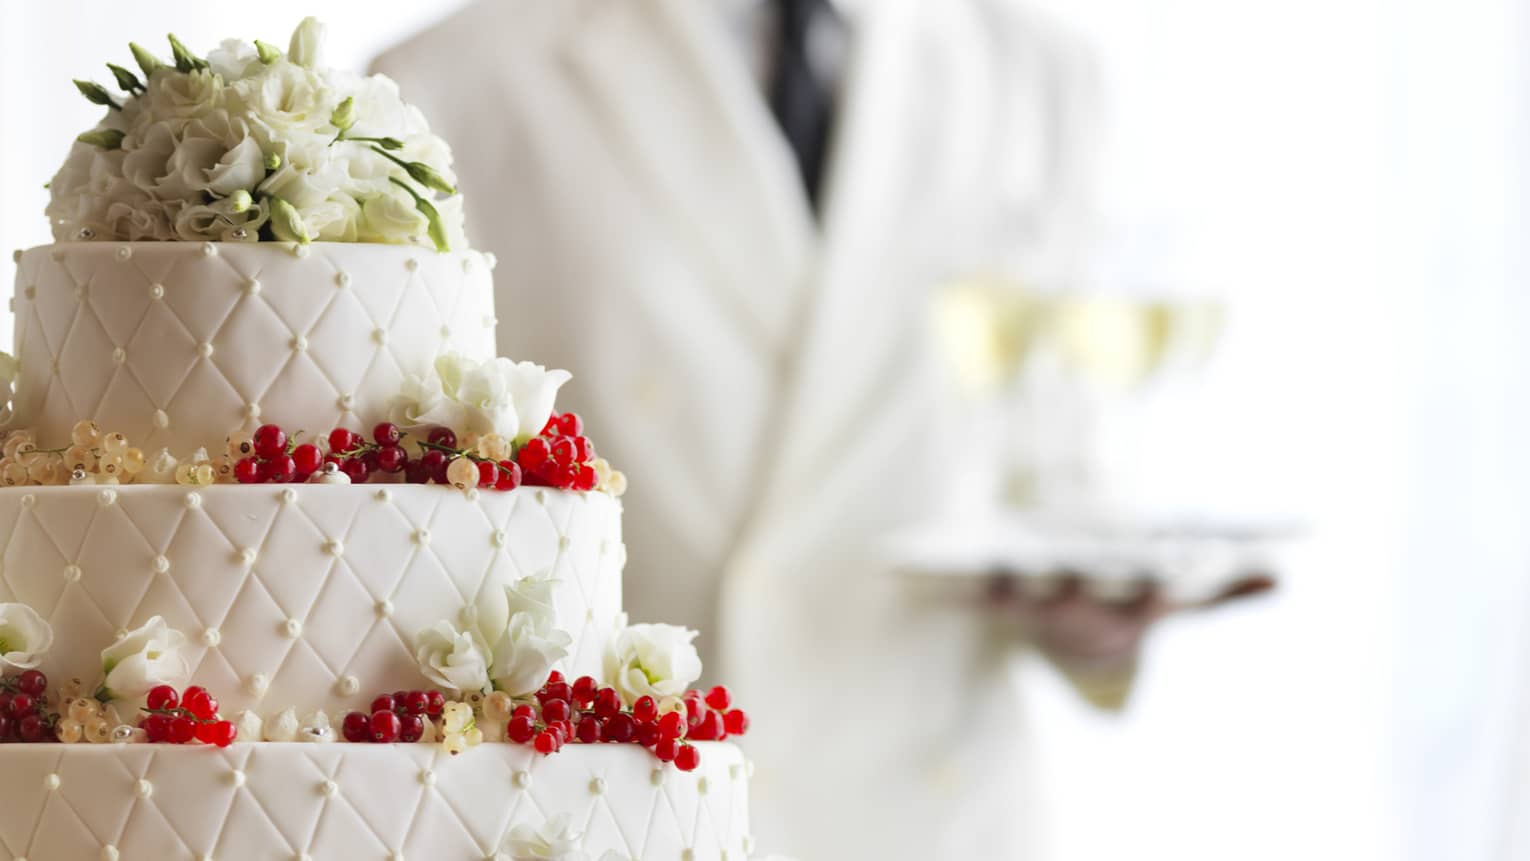 Waiter with tray of Champagne glasses behind white tiered wedding cake with flowers